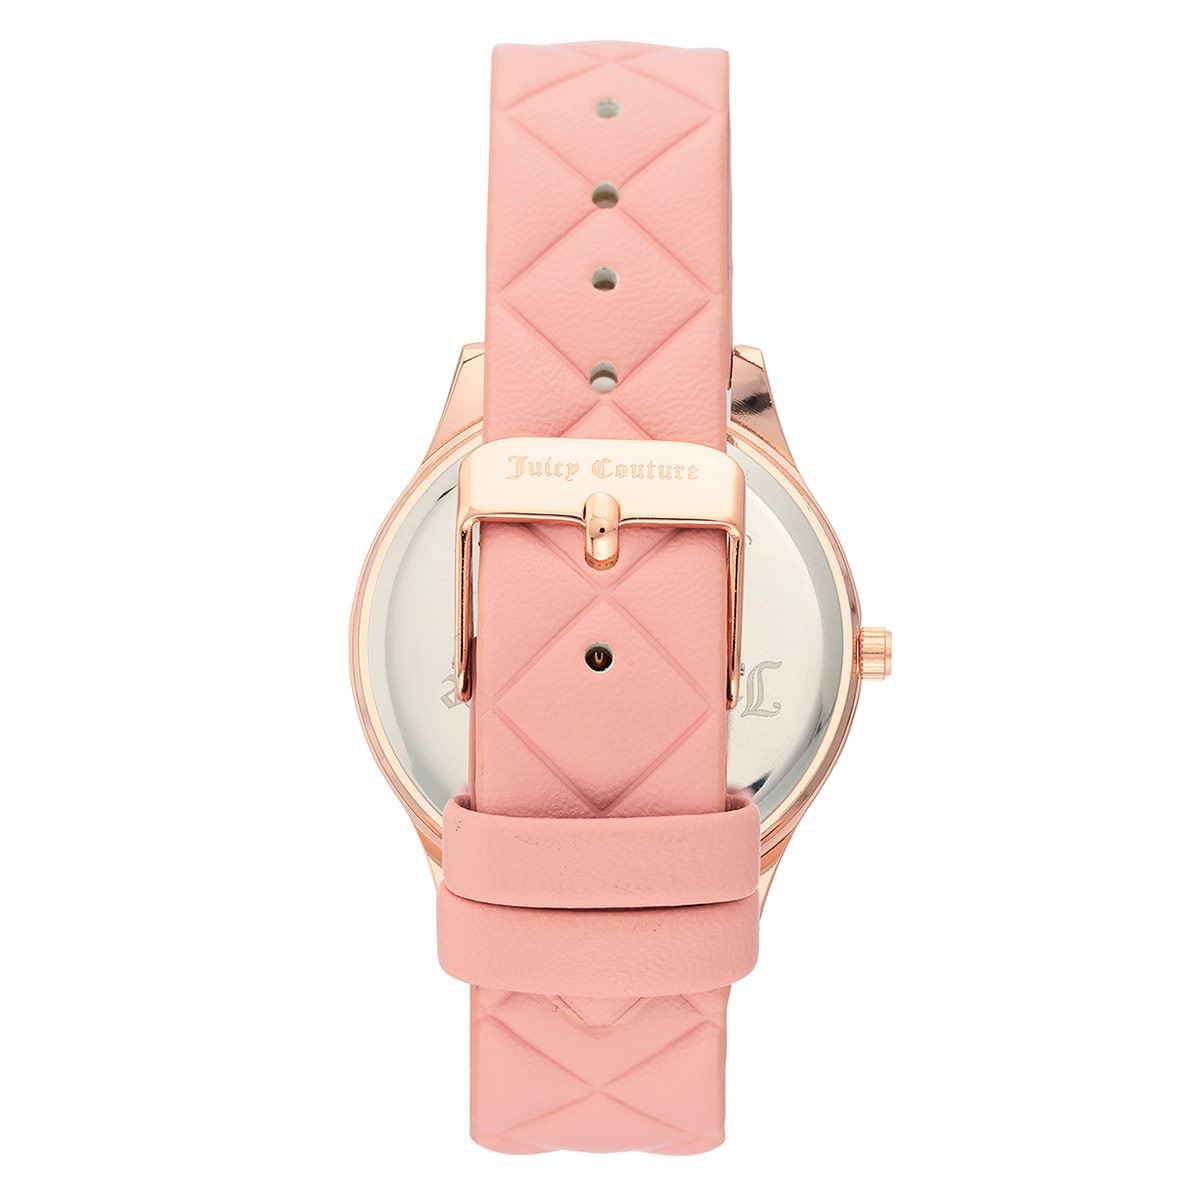 Reloj Juicy Couture Rosa JC1104RGPK Para Dama